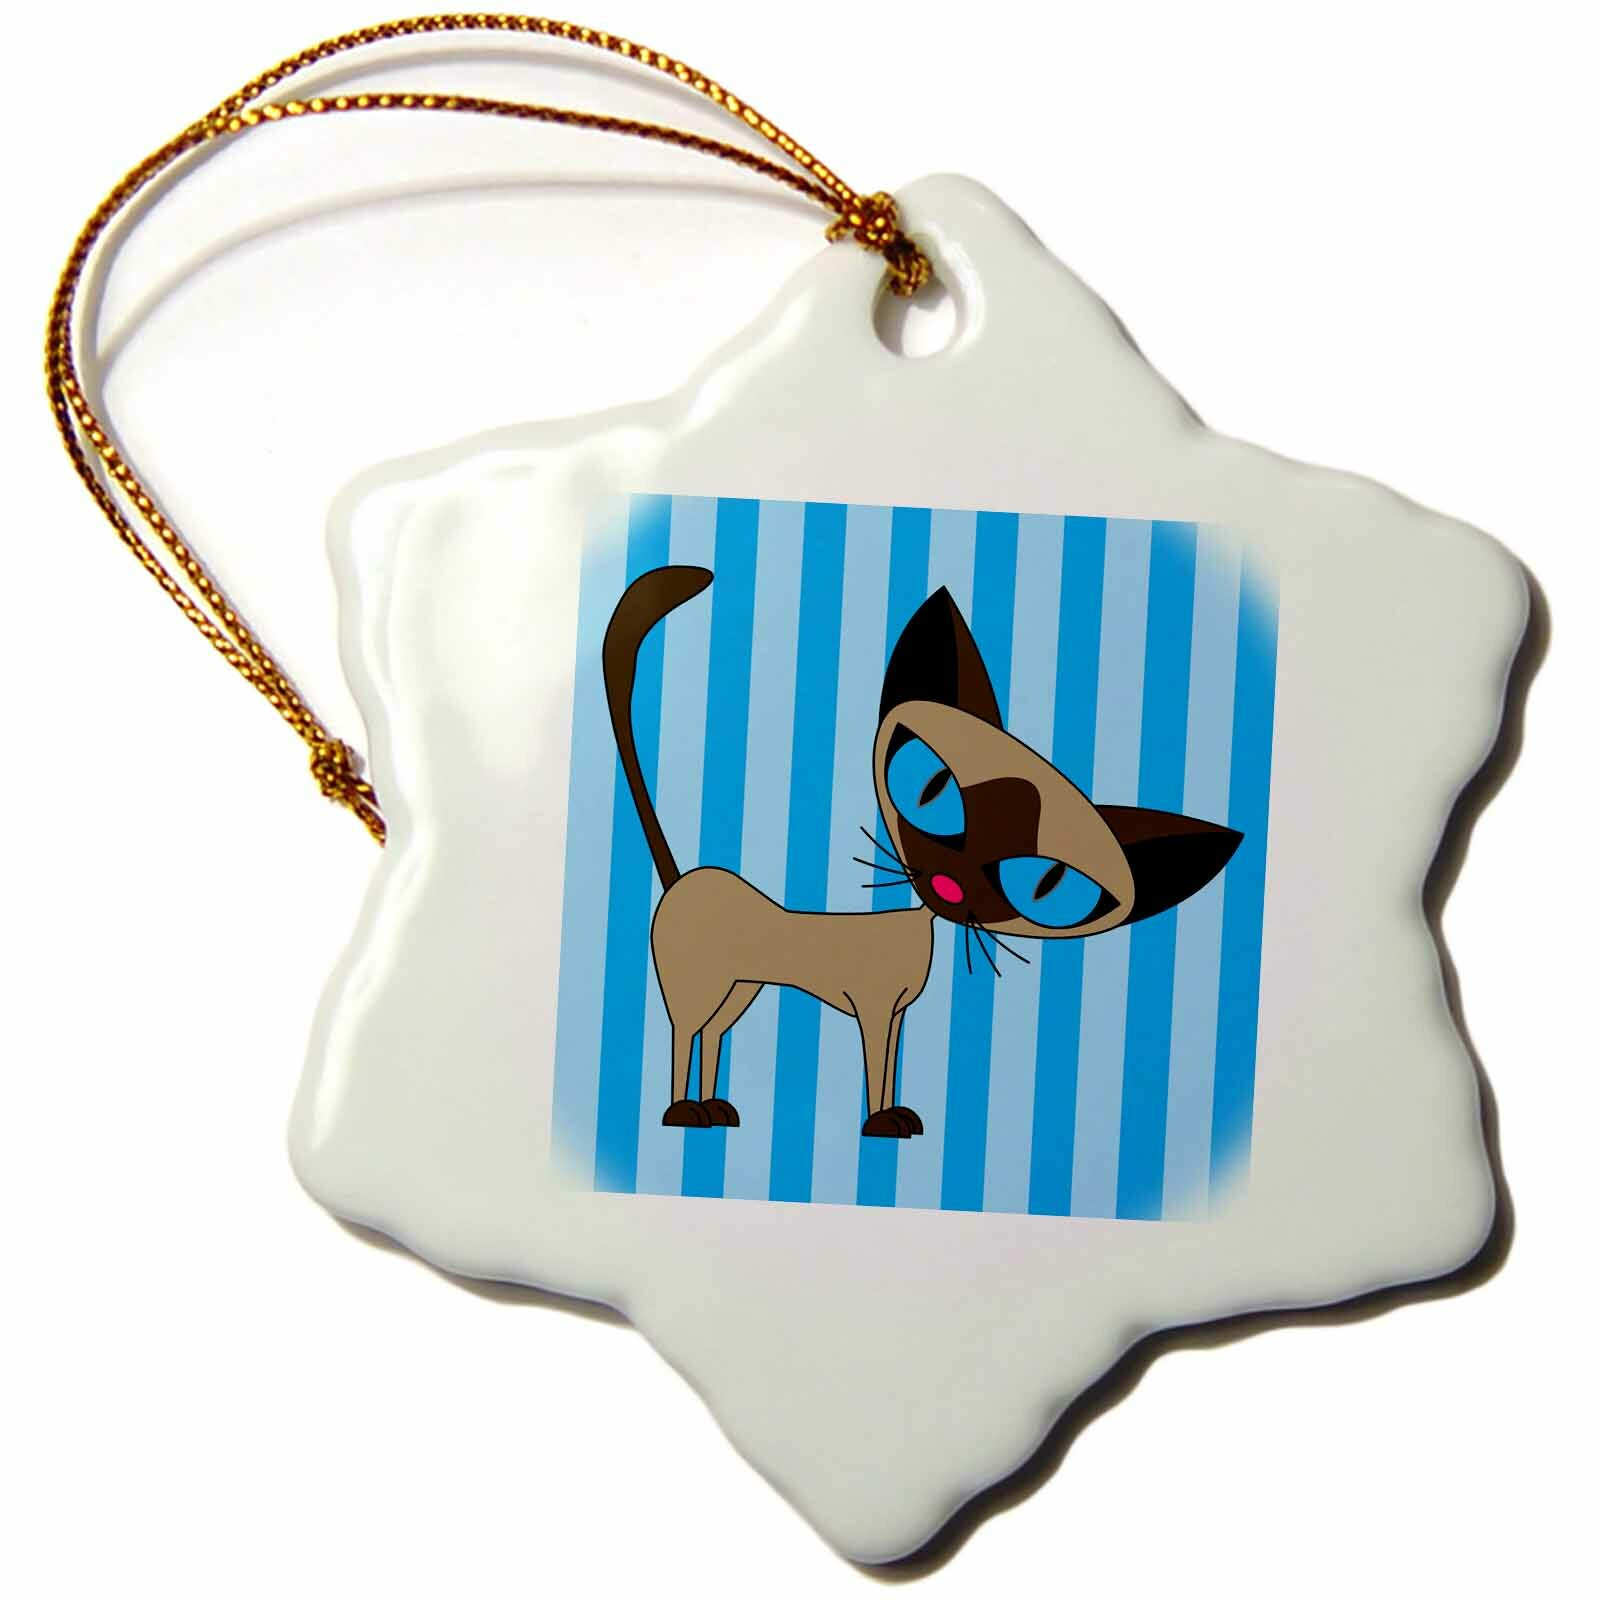 The Holiday Aisle Cute Siamese Cat Design Holiday Shaped Ornament Wayfair